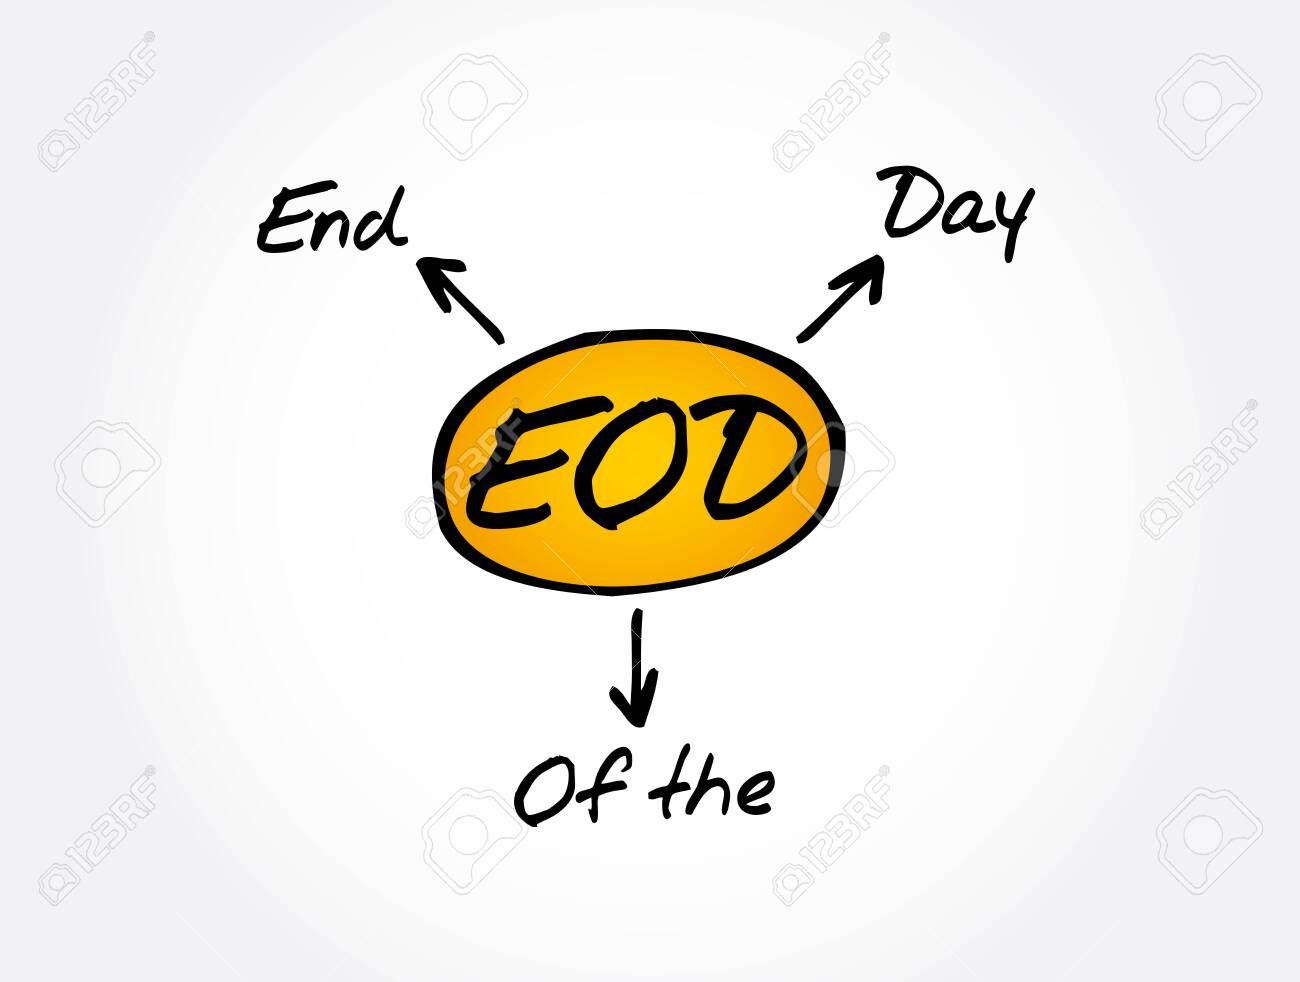 EOD - End Of the Day acronym, business concept background - 157875265